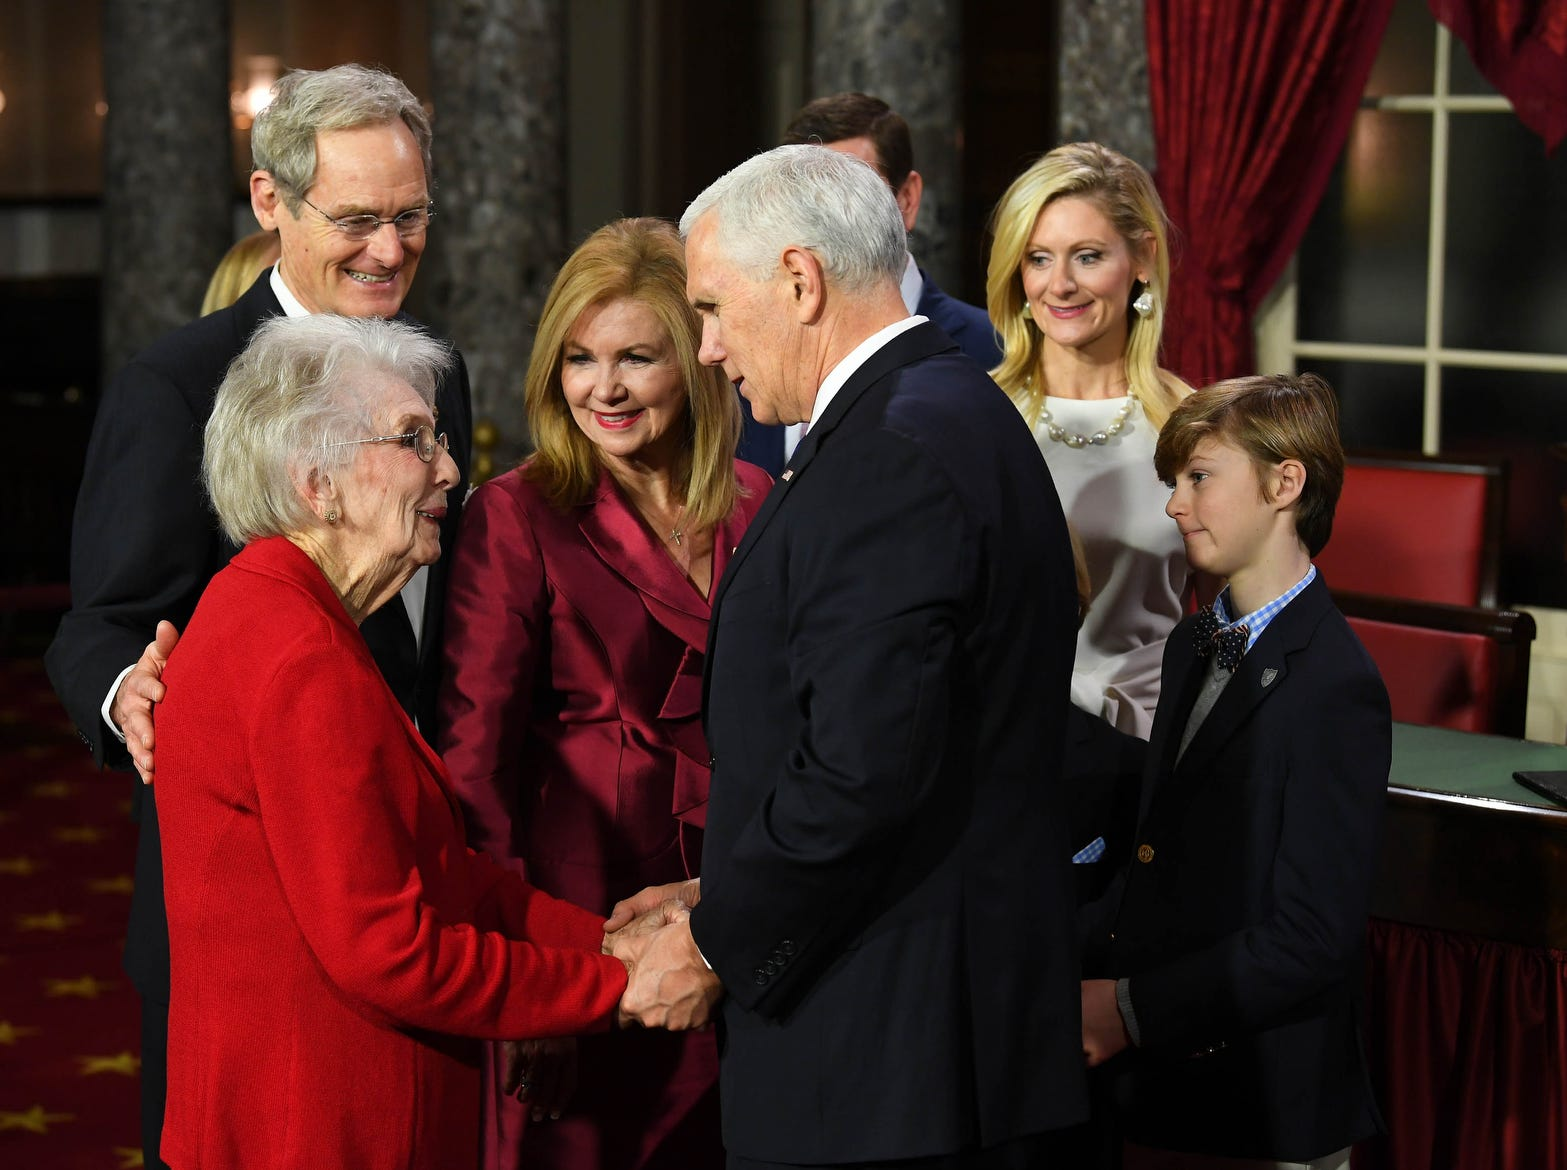 ice President Mike Pence shakes the hand of Marsha Blackburn's mother Mary Jo Morgan Wedgeworth before he officiates ceremonial swearing-in of Marsha Blackburn as family members look on.